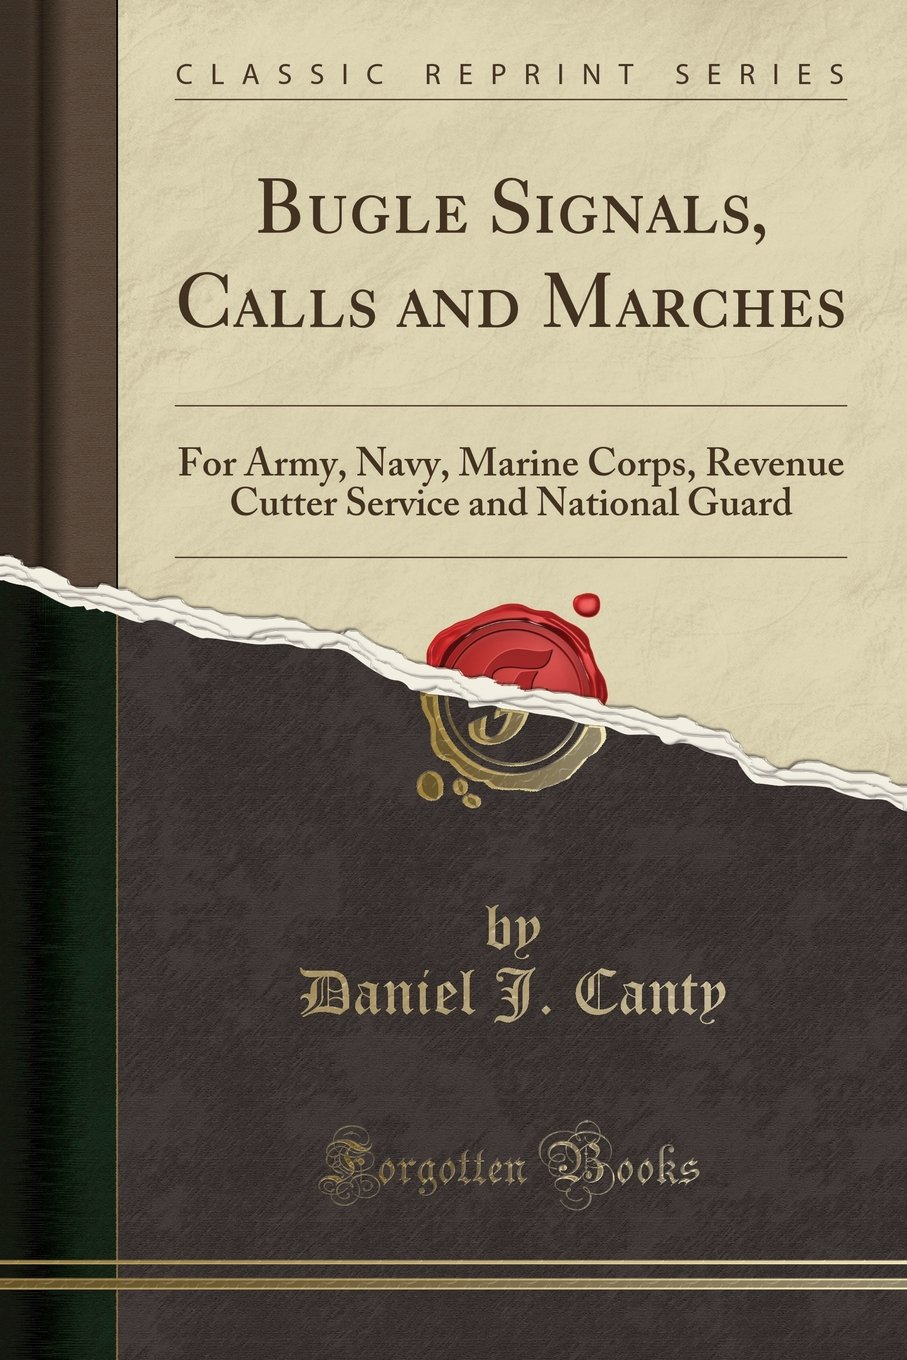 Bugle Signals, Calls and Marches: For Army, Navy, Marine Corps, Revenue Cutter Service and National Guard (Classic Reprint)